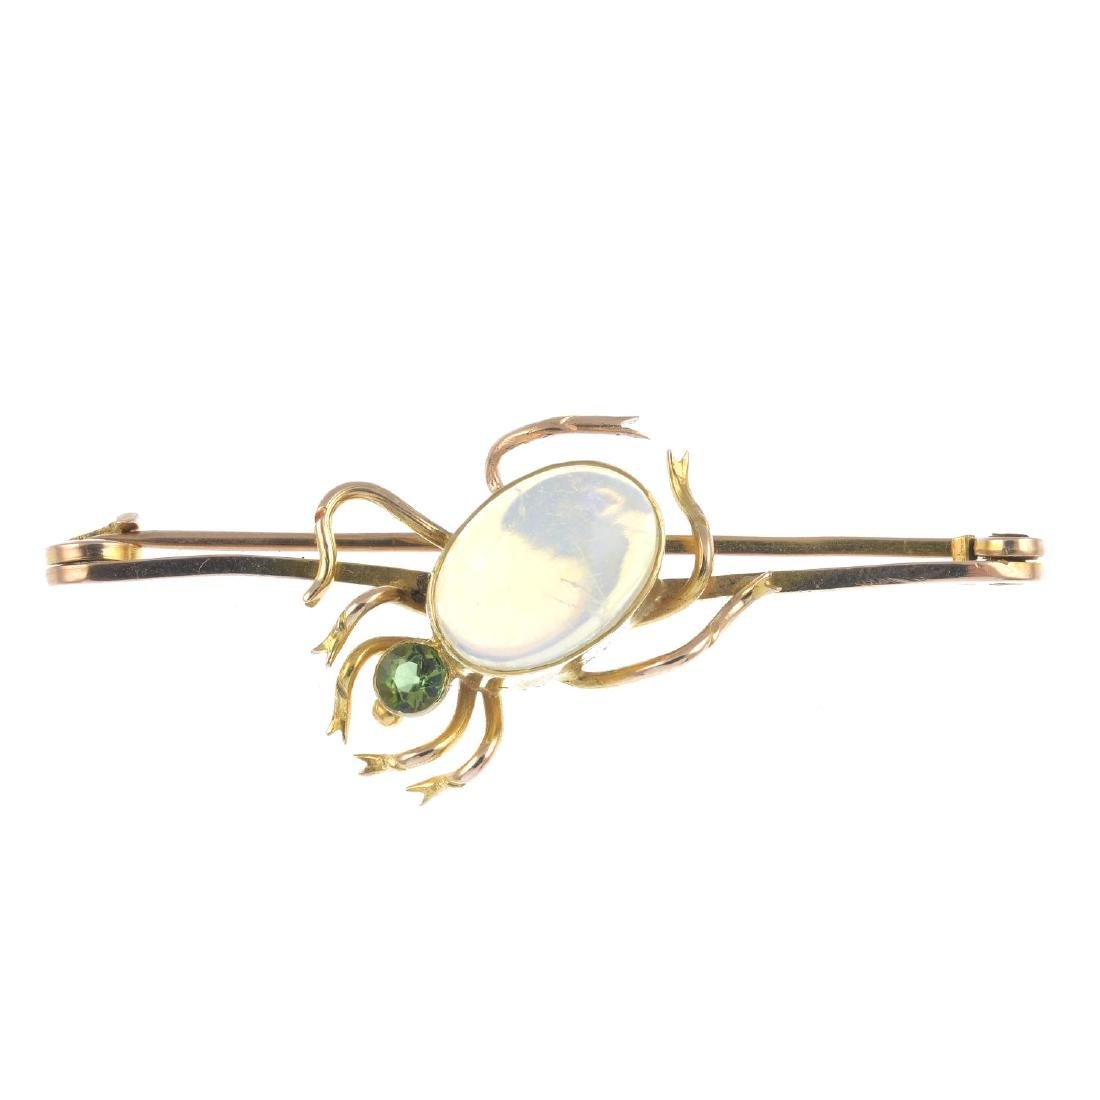 A gem-set spider brooch. The oval opal cabochon